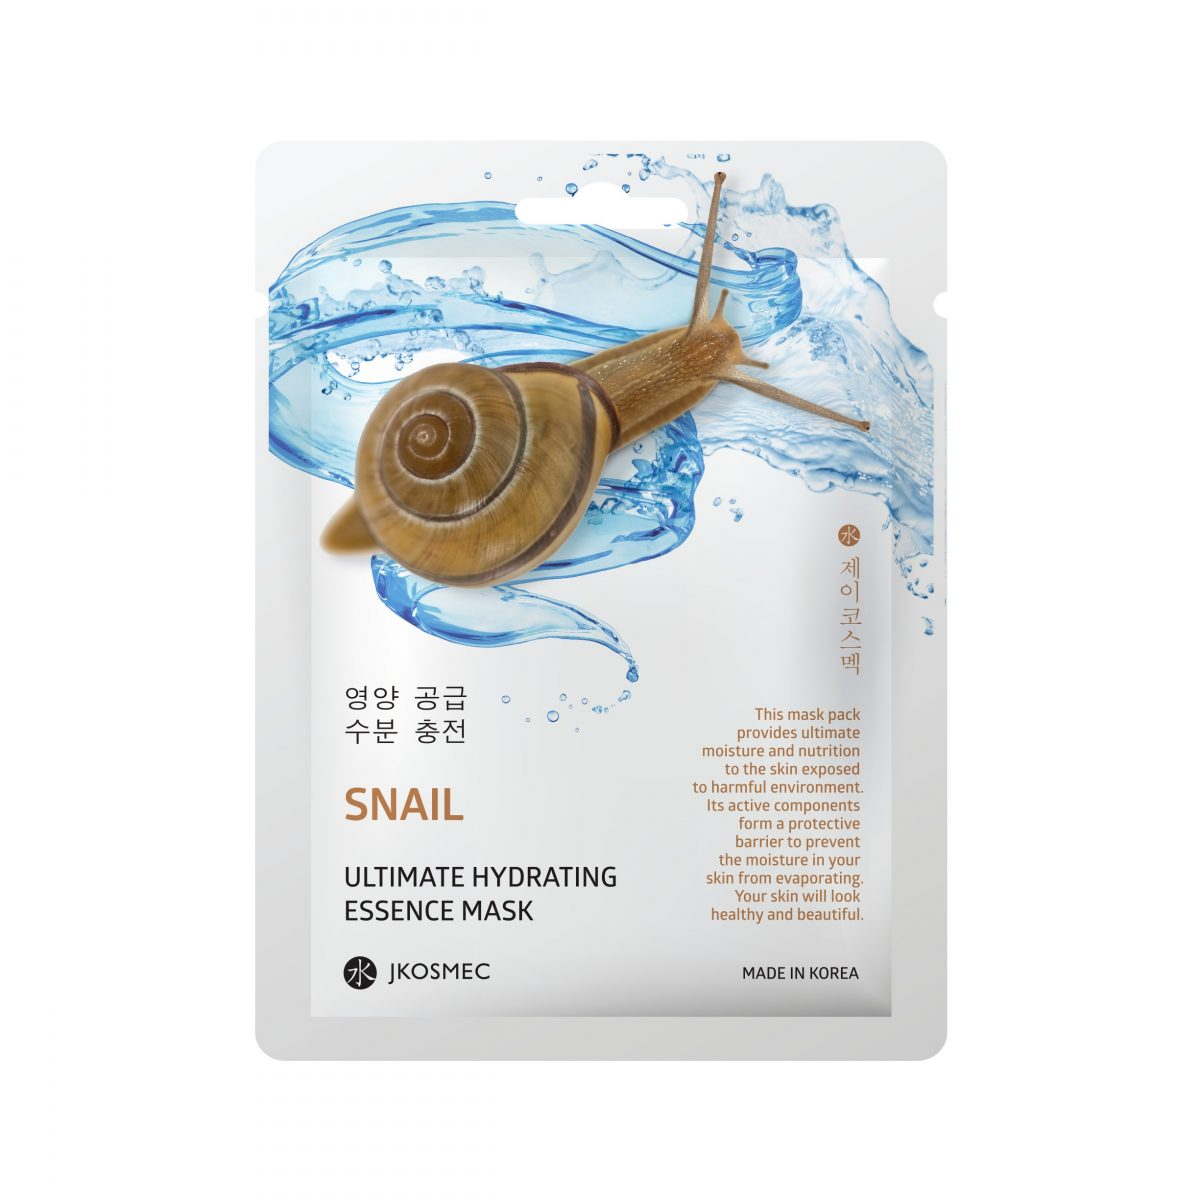 JKOSMEC SNAIL ULTIMATE HYDRATING ESSENCE MASK